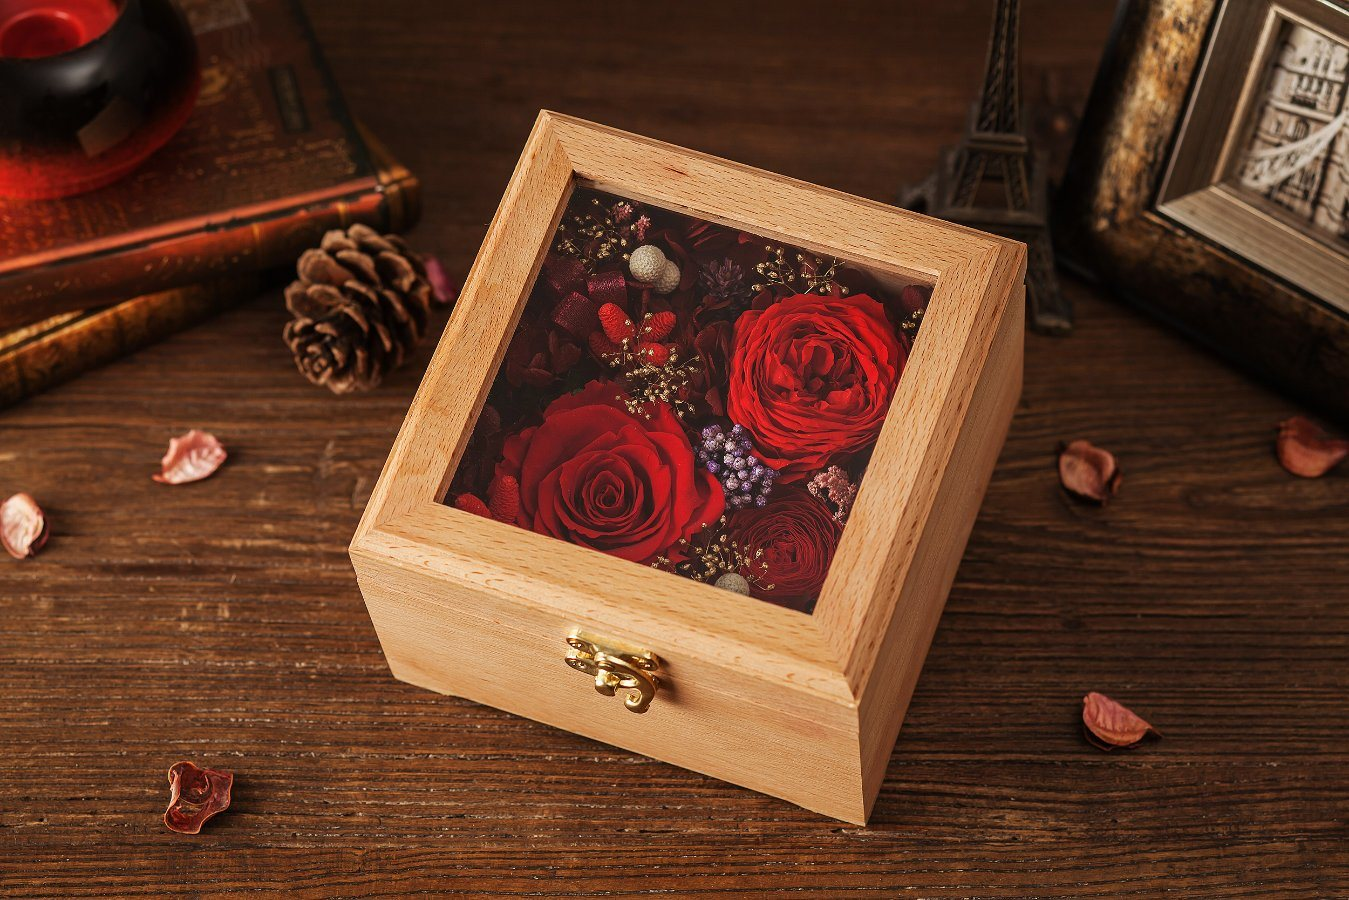 Ivenran Wooden Gift Box Preserved Fresh Flower for Creative Gift